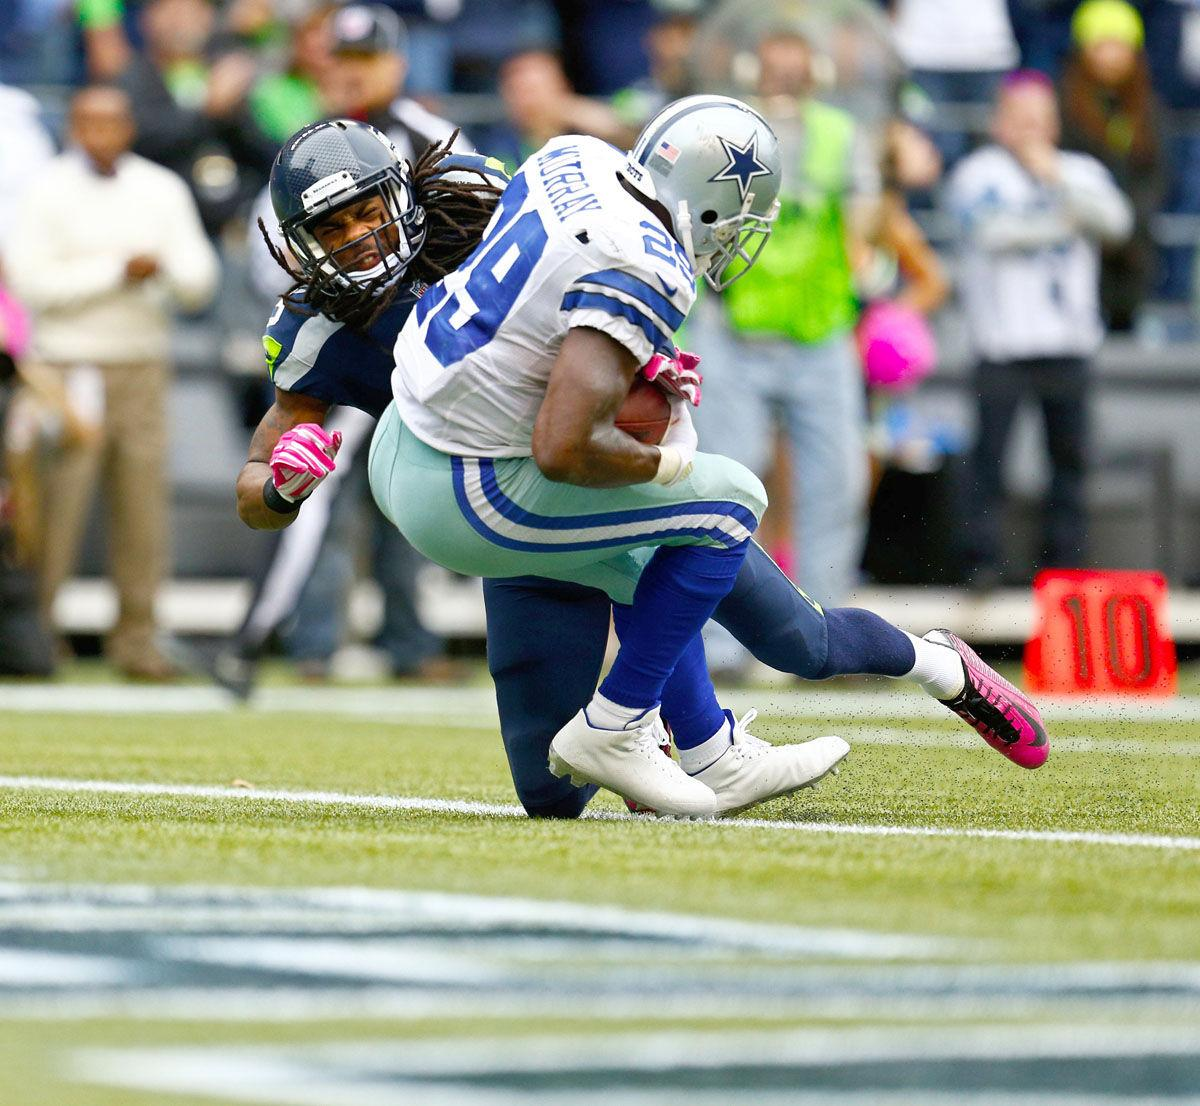 %3Cp%3EAfter+defeating+the+Seattle+Seahawks%2C+it%27s+clear+that+the+Dallas+Cowboys+are+back.%C2%A0%3C%2Fp%3E